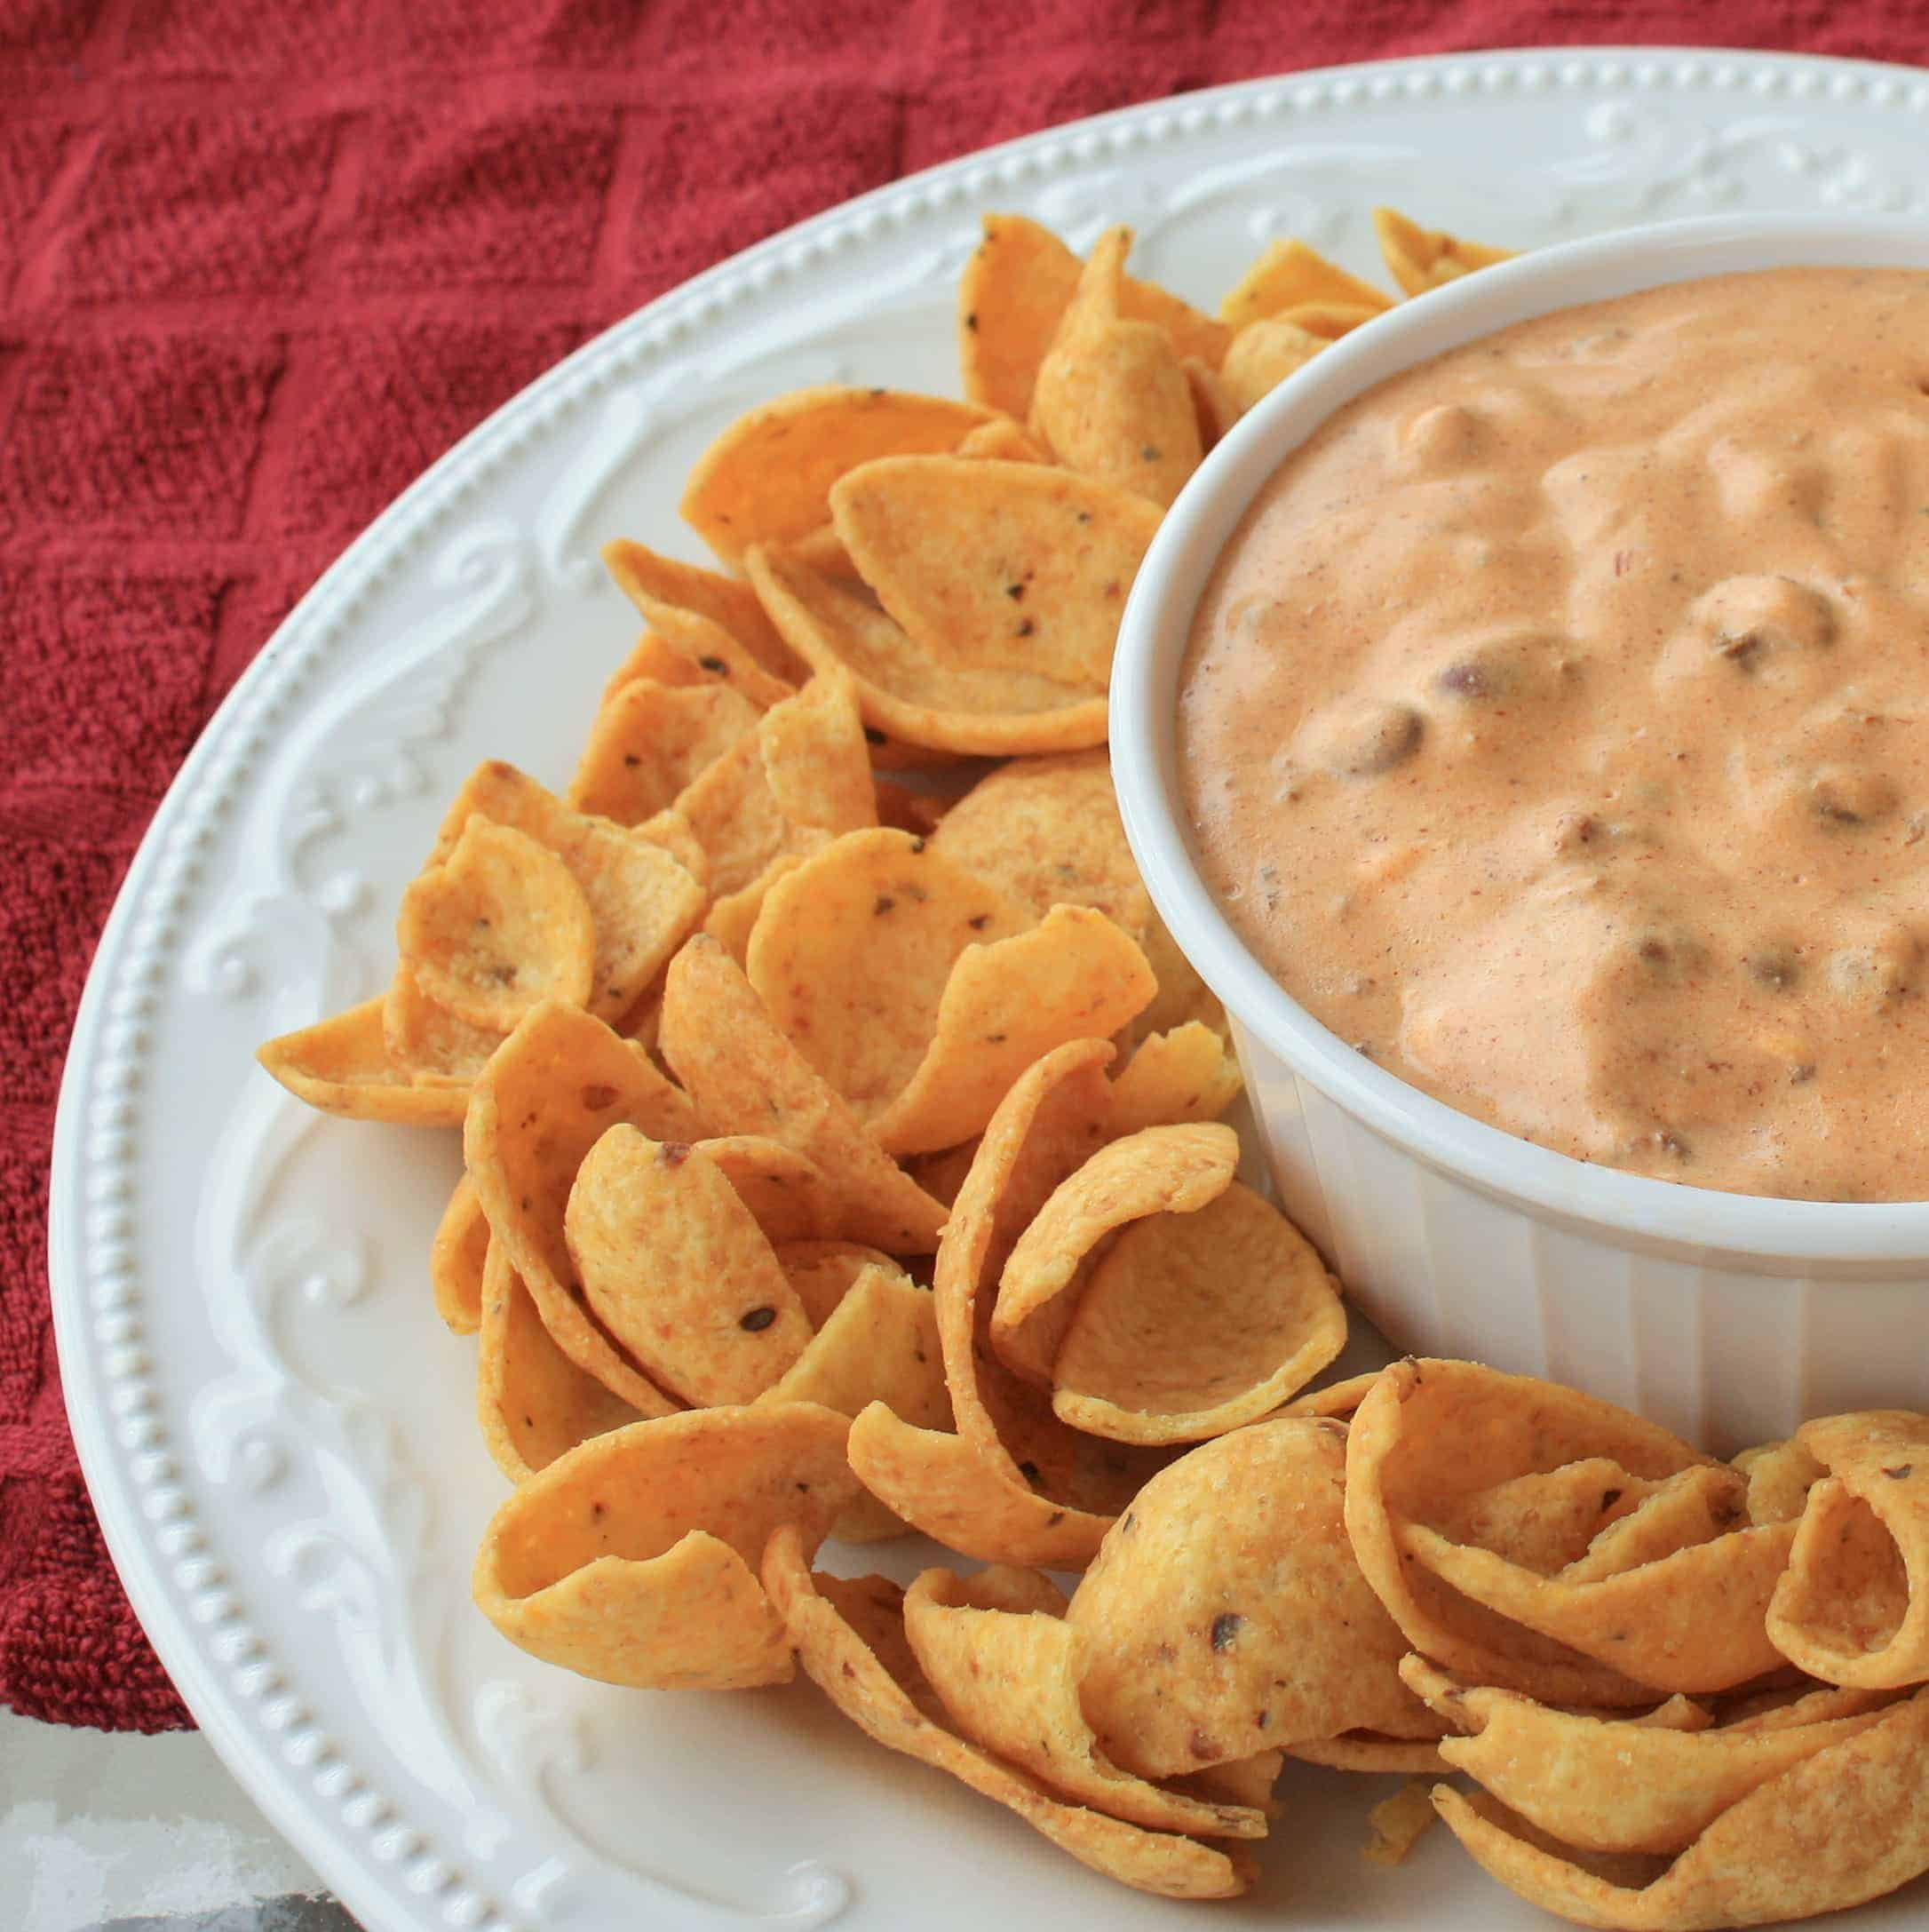 Chili Cream Cheese Dip The Girl Who Ate Everything